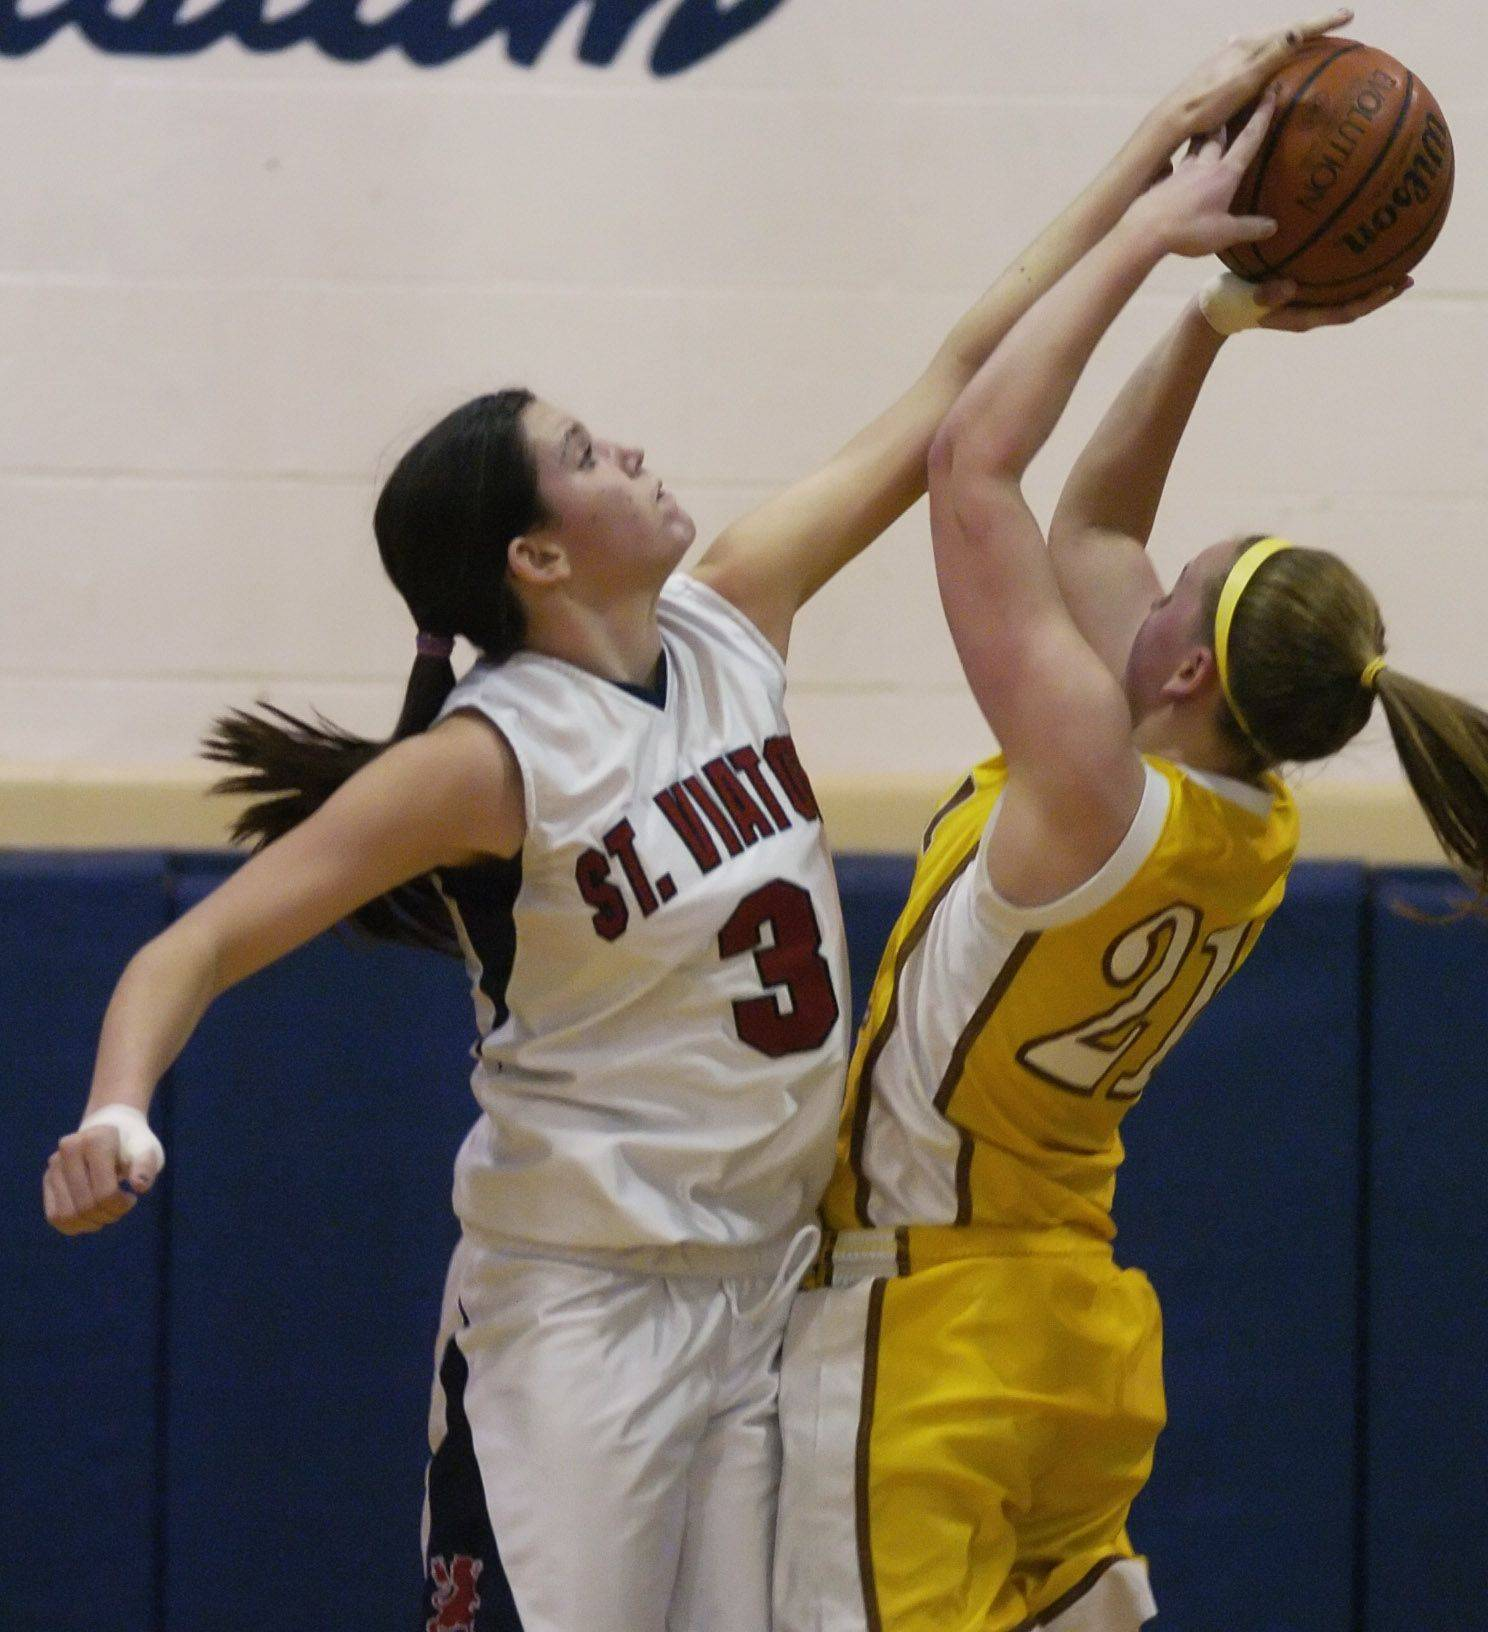 St. Viator's Lauren Rooney blocks a shot by Carmel's Sarah McHugh during Wednesday's game.